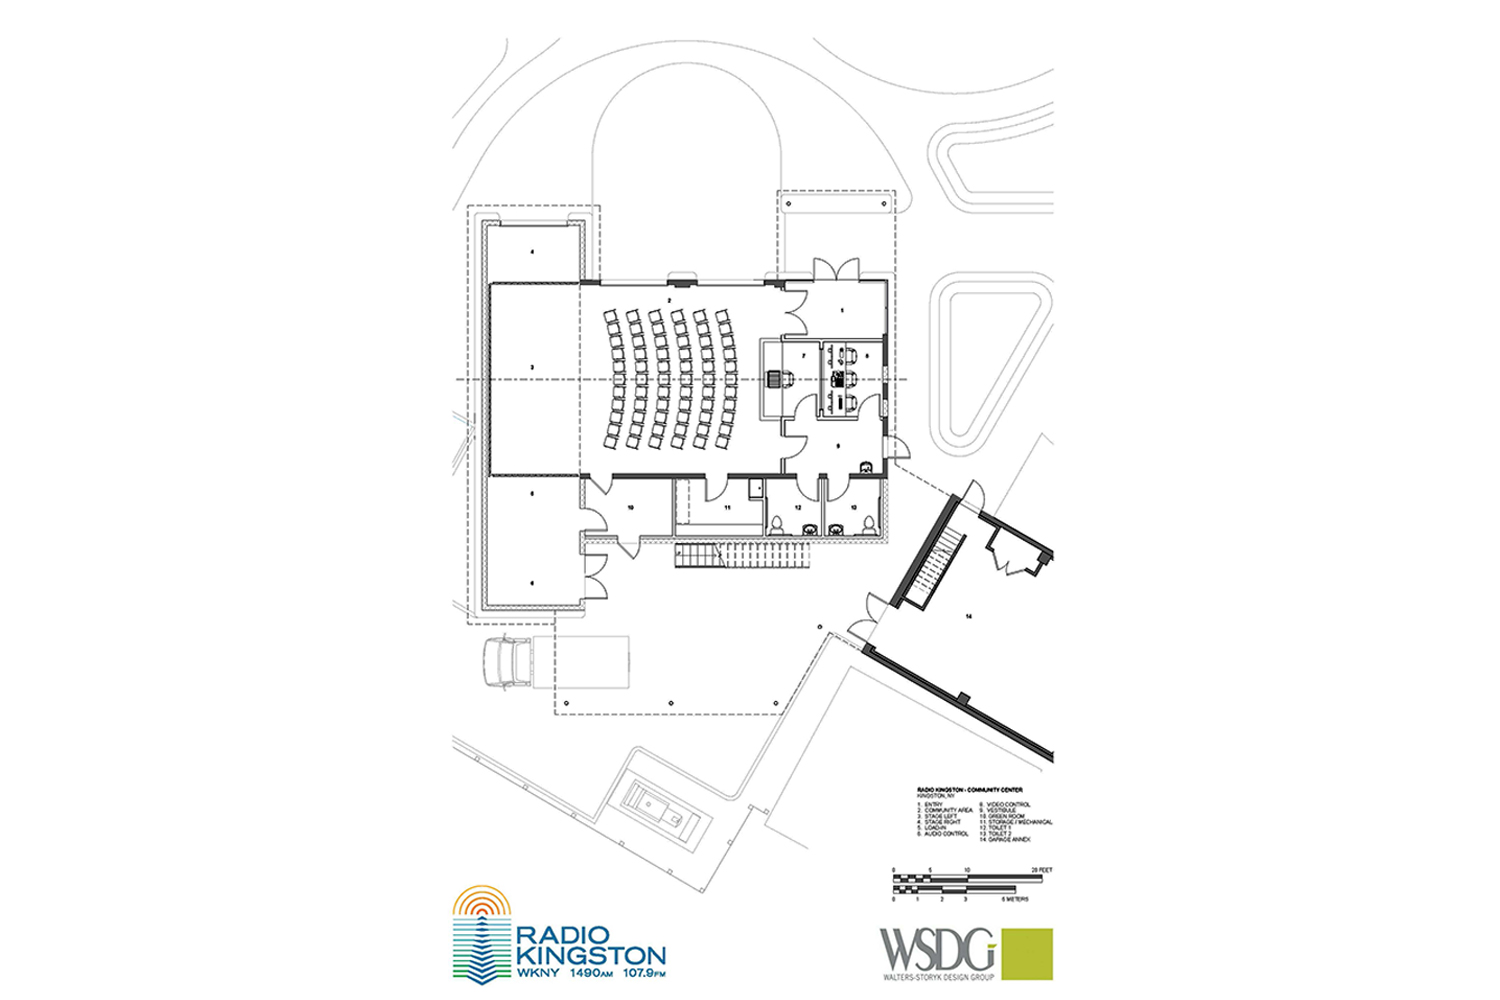 WSDG was retained to design a non-commercial contemporary broadcast/podcast facility for Radio Kingston WKNY new broadcast center. Community center drawing.